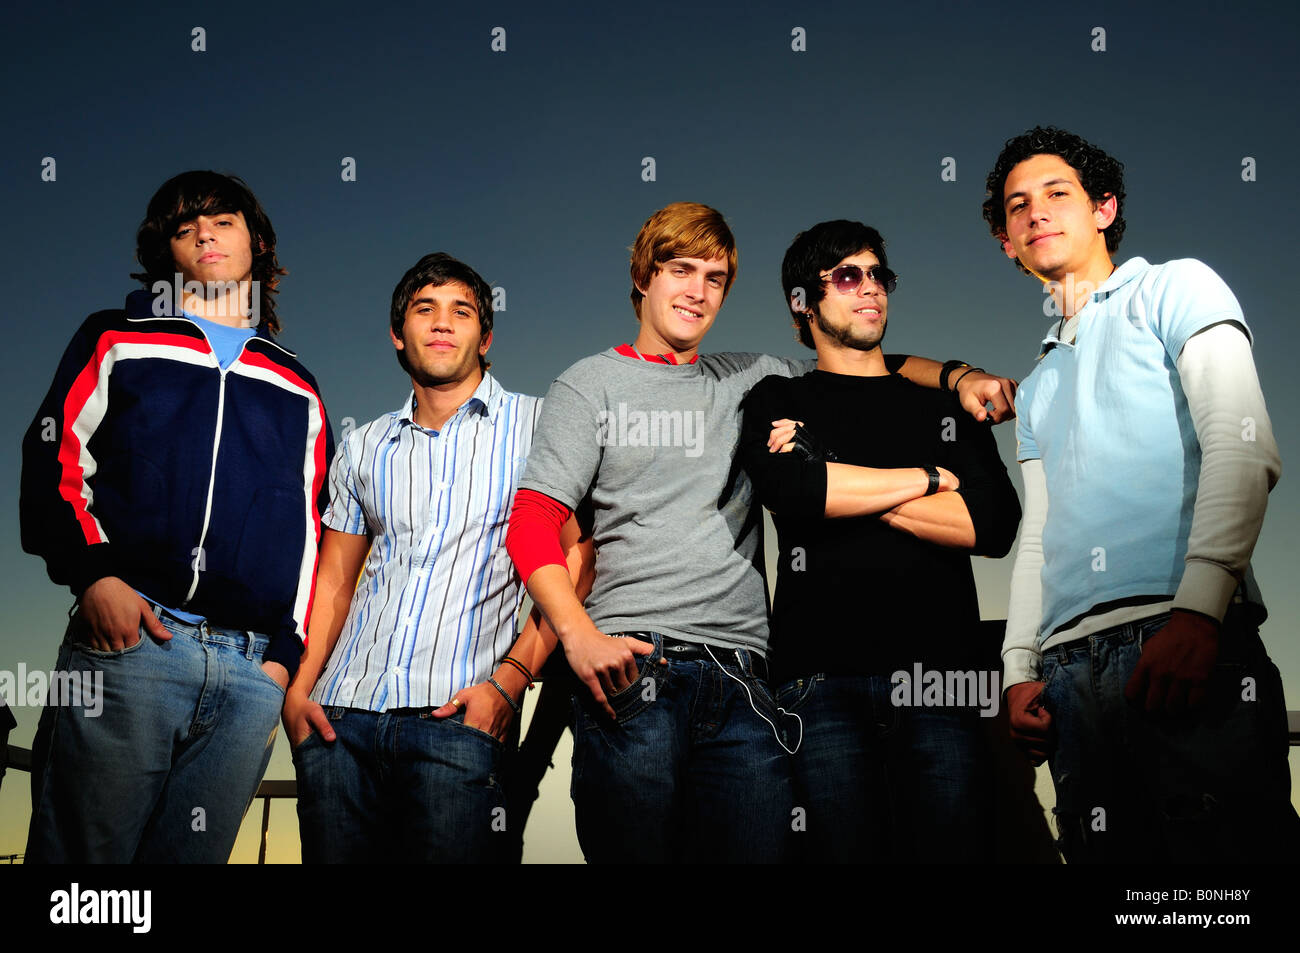 Portrait of young trendy teenager group of friends standing together - Stock Image